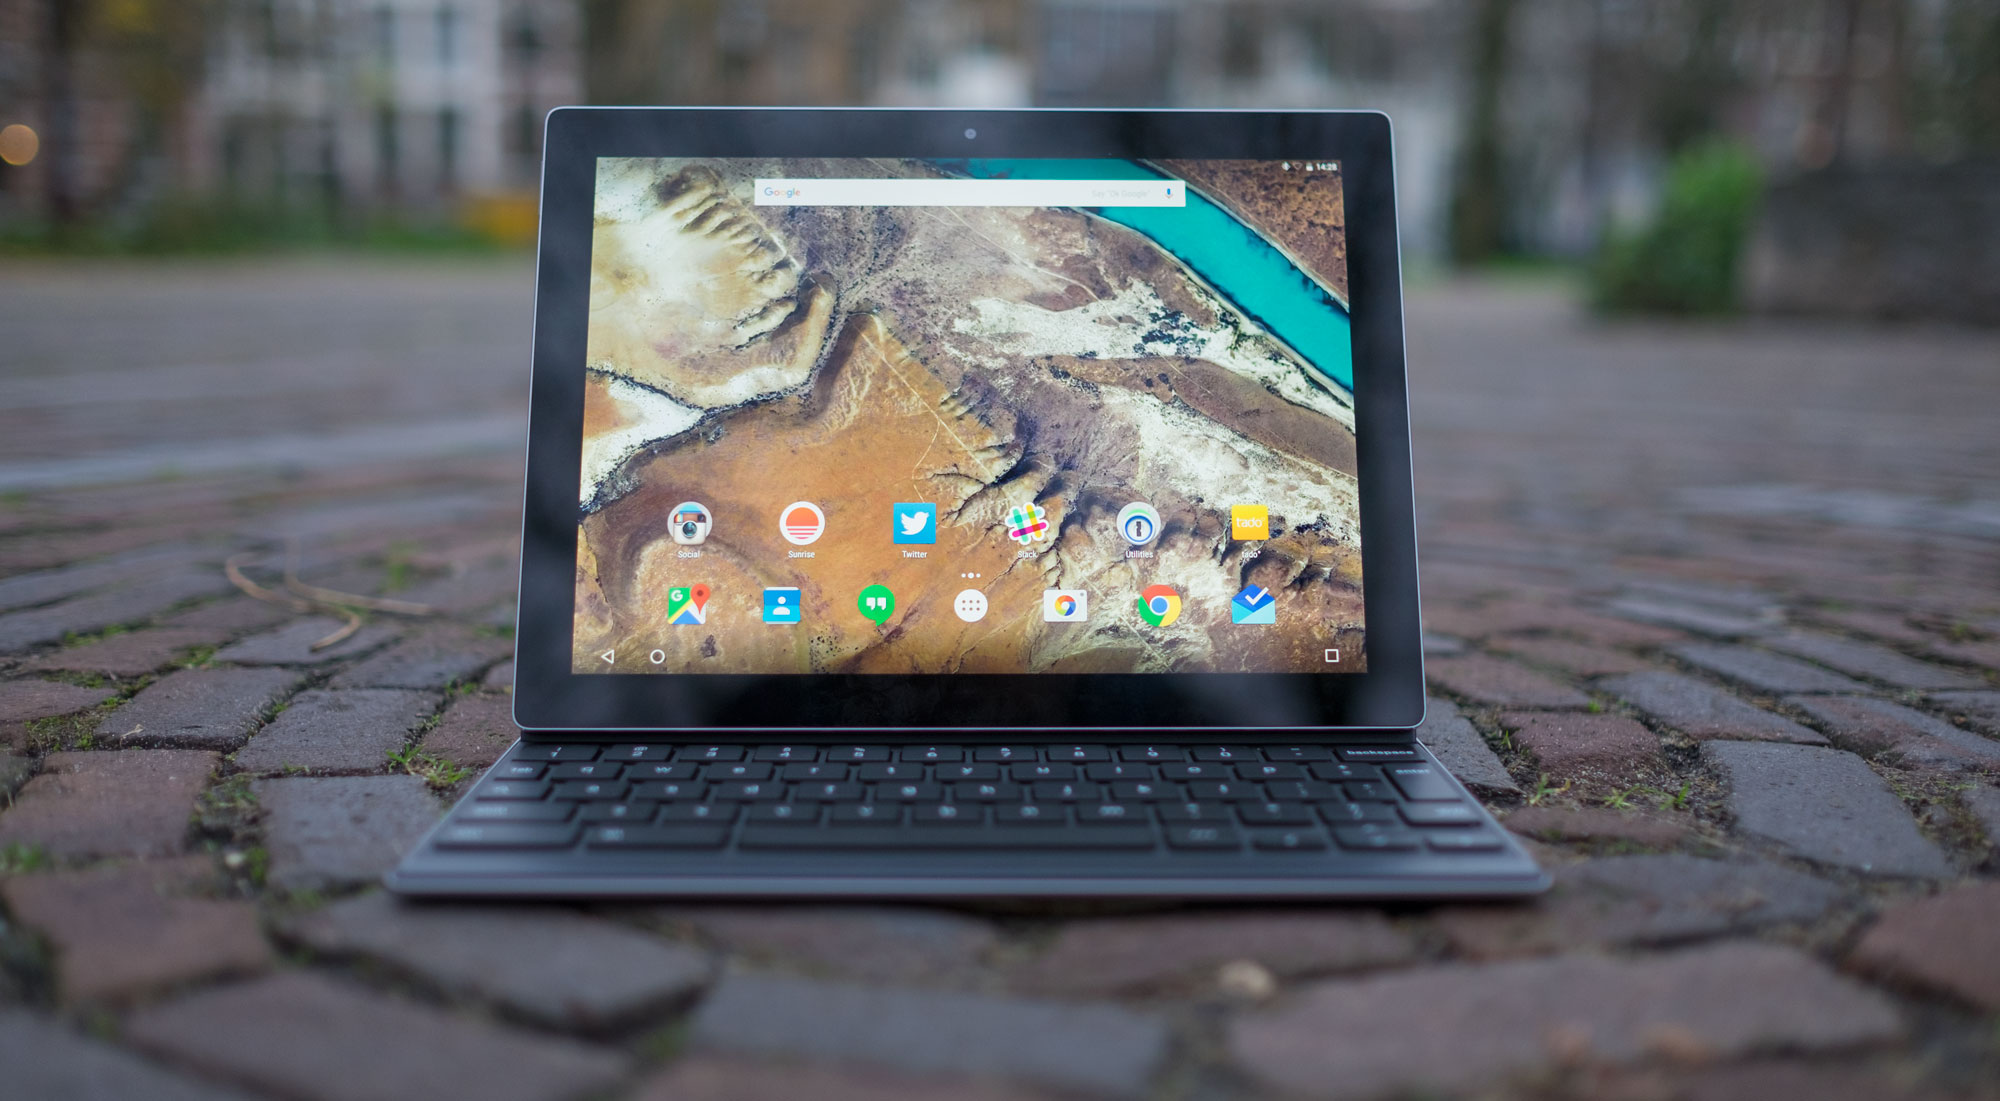 Google's Pixel C tablet is amazing -- except for one big problem